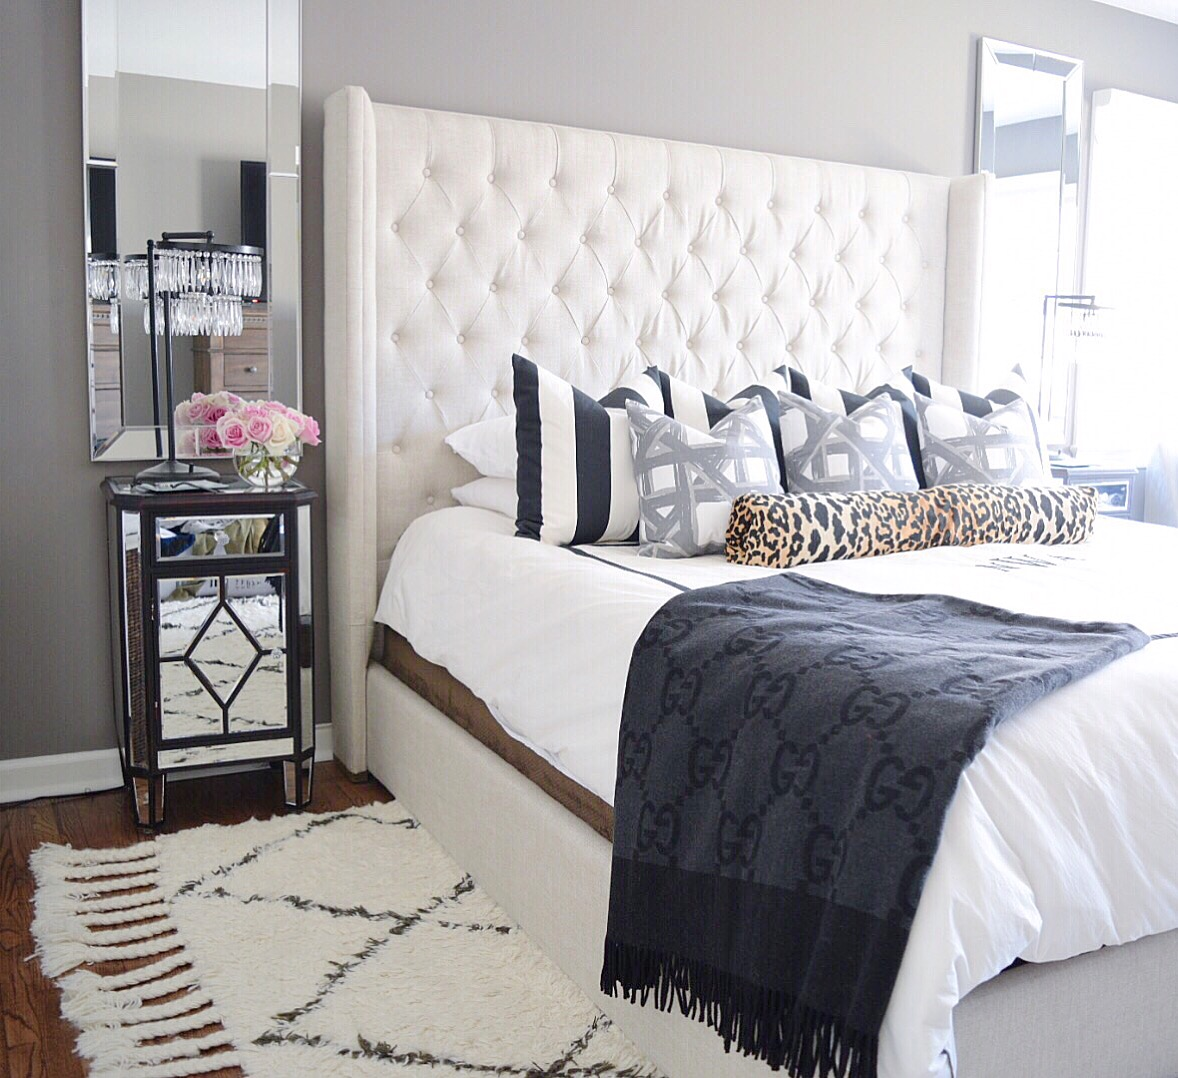 Beau Have You Ever Wanted To Make A Change To Your Bedroom By Updating A Single  Piece? I Think That Getting A New Headboard Is The Perfect Way, Especially  If You ...